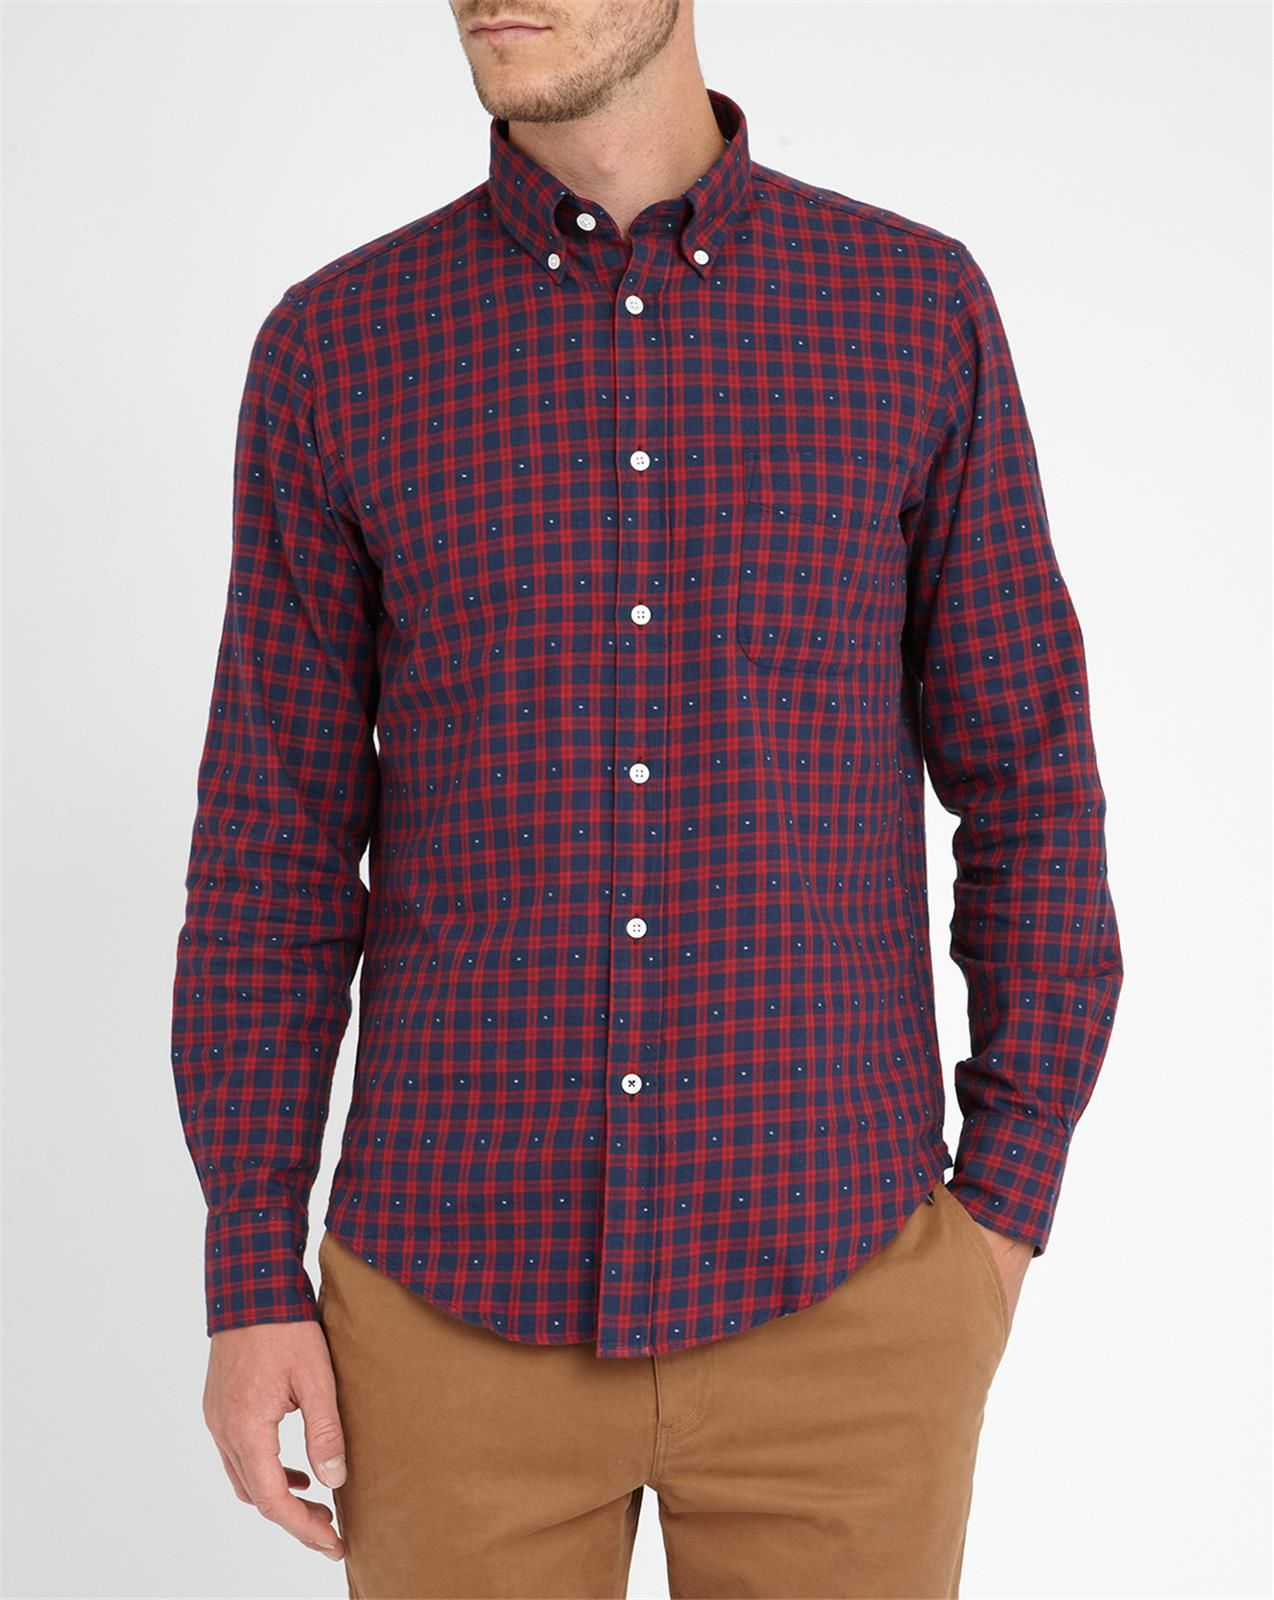 Hartford red with white detail slim fit flannel plaid for Trim fit flannel shirts